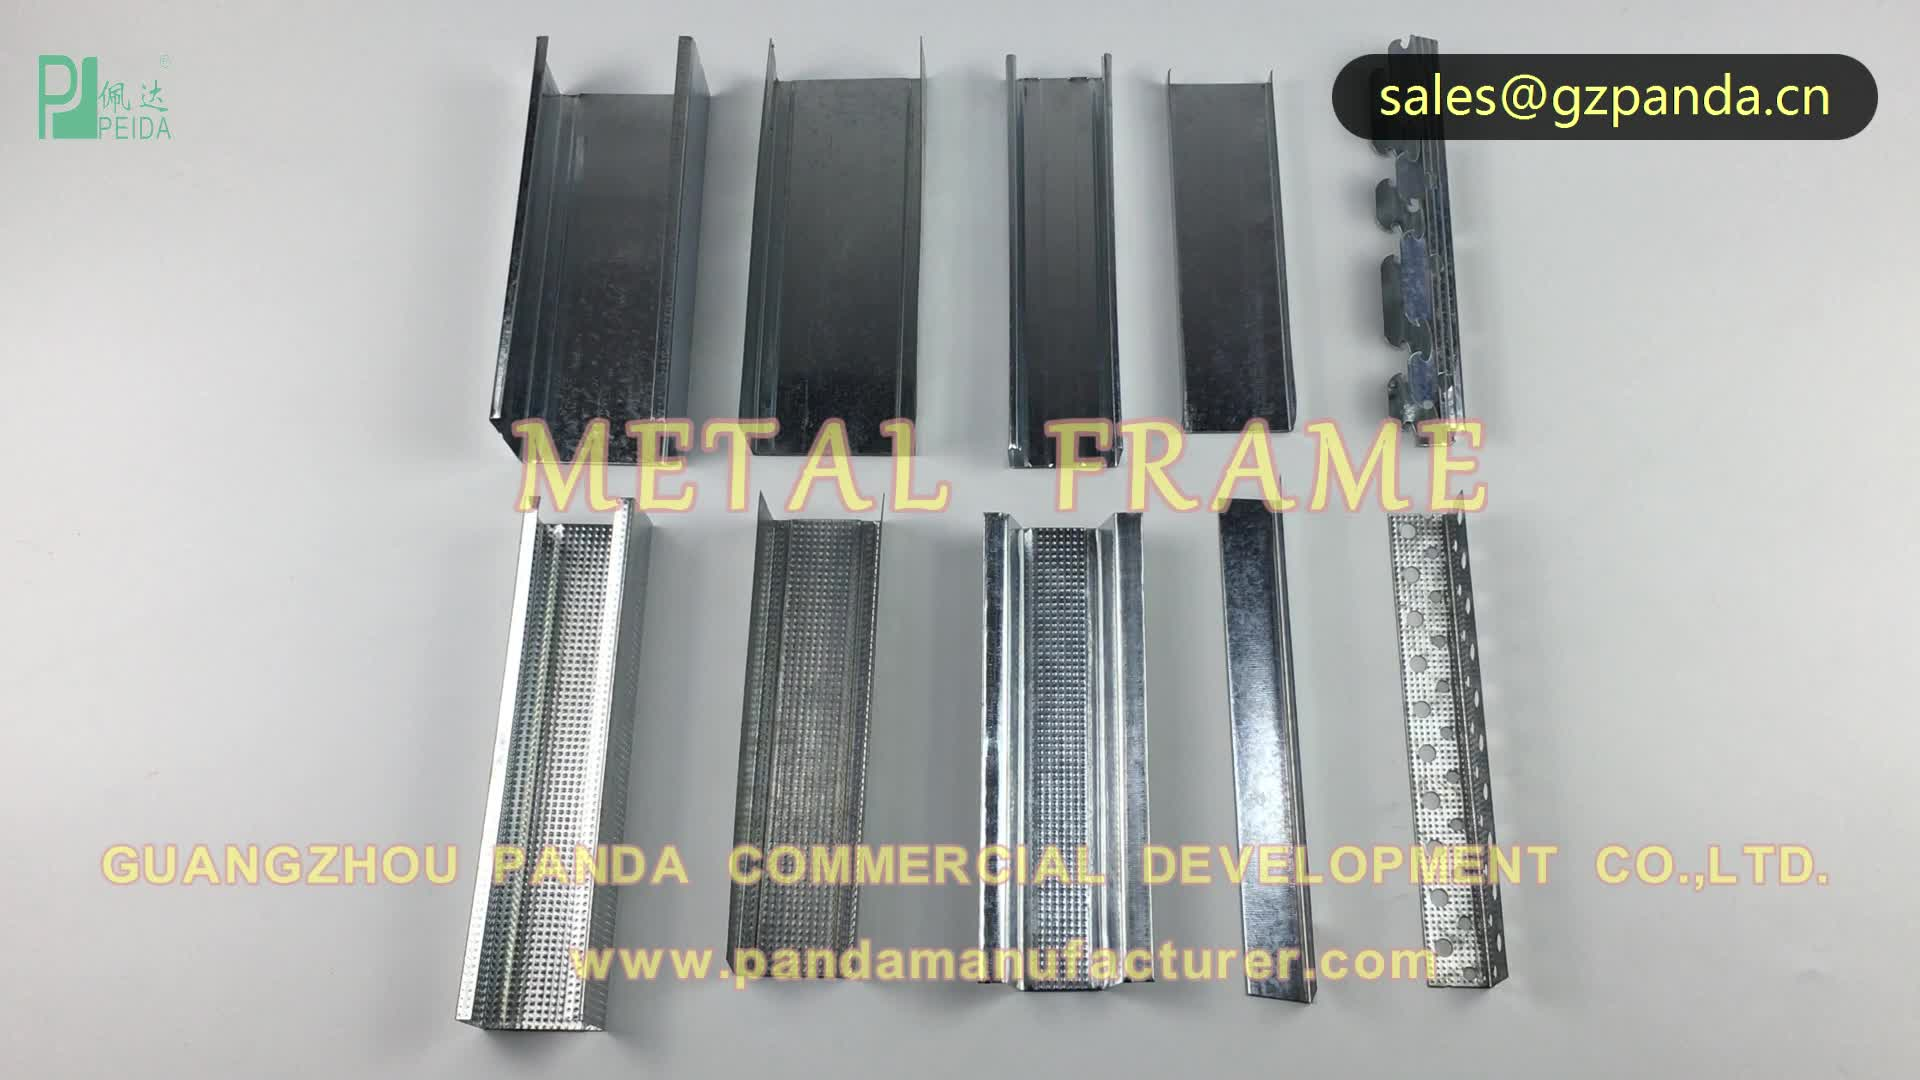 Drywall Channel C Galvanized Light Steel Keel Profiles Metal Stud and Track